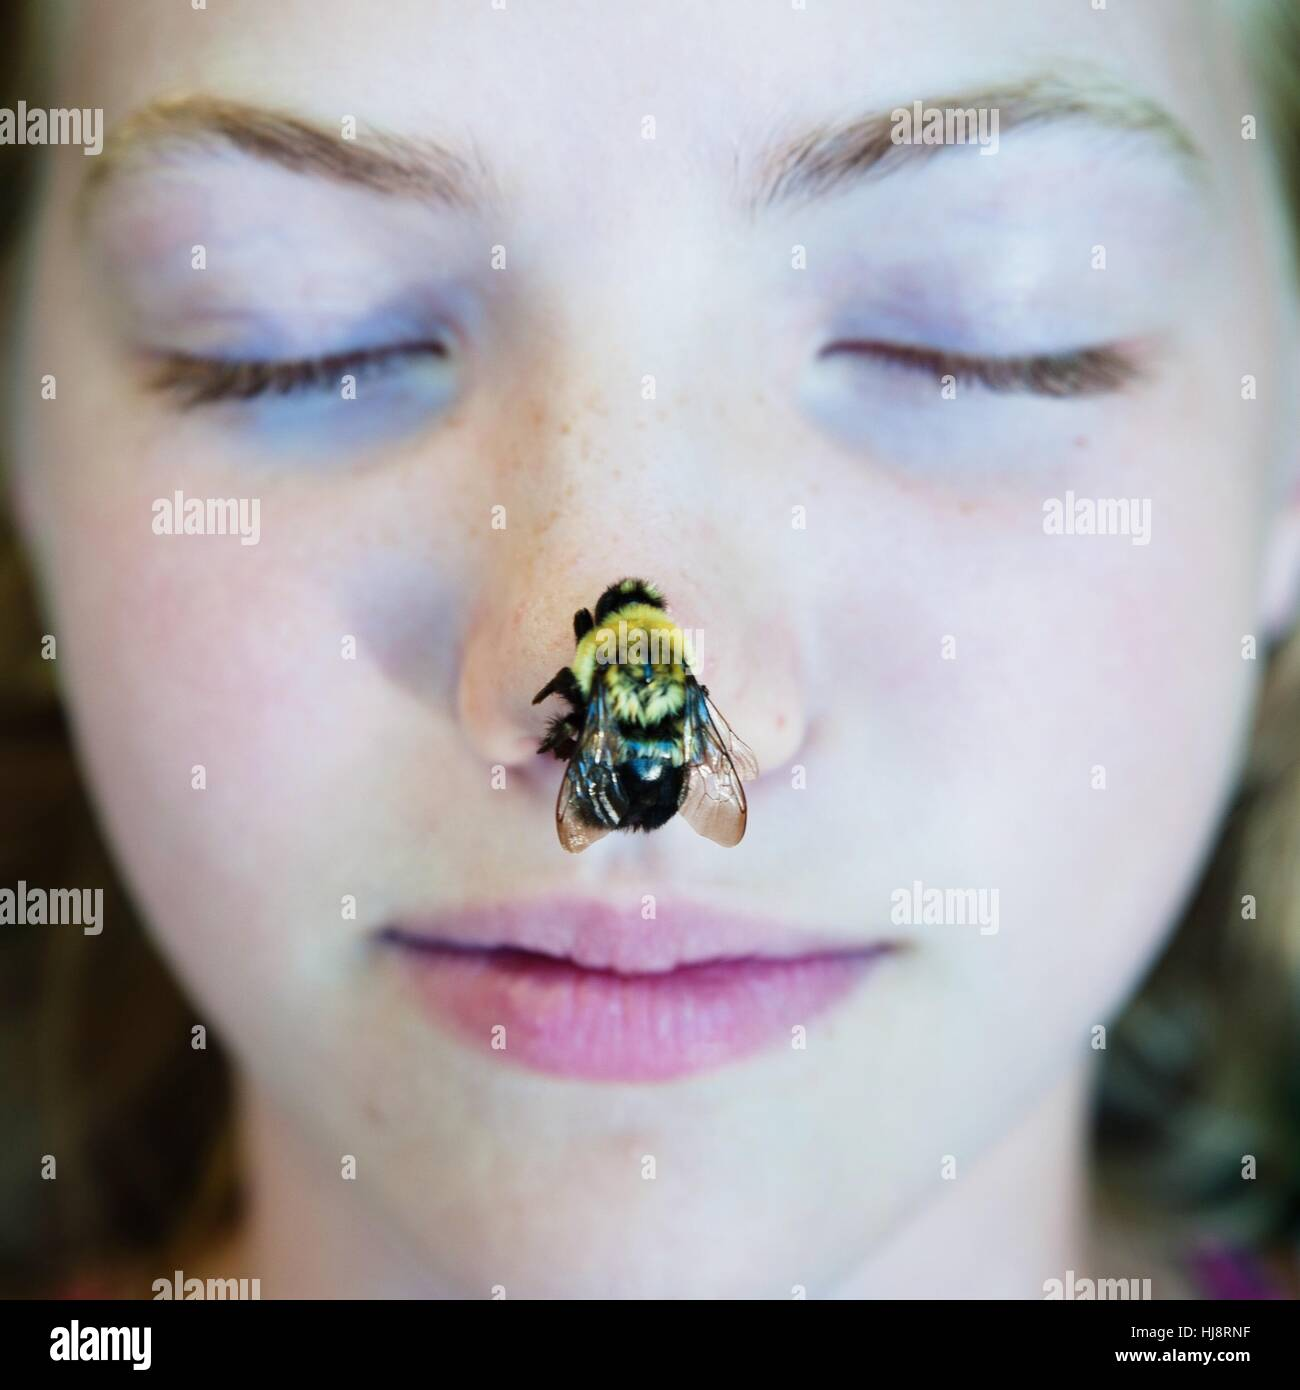 Girl with a bee on her nose - Stock Image